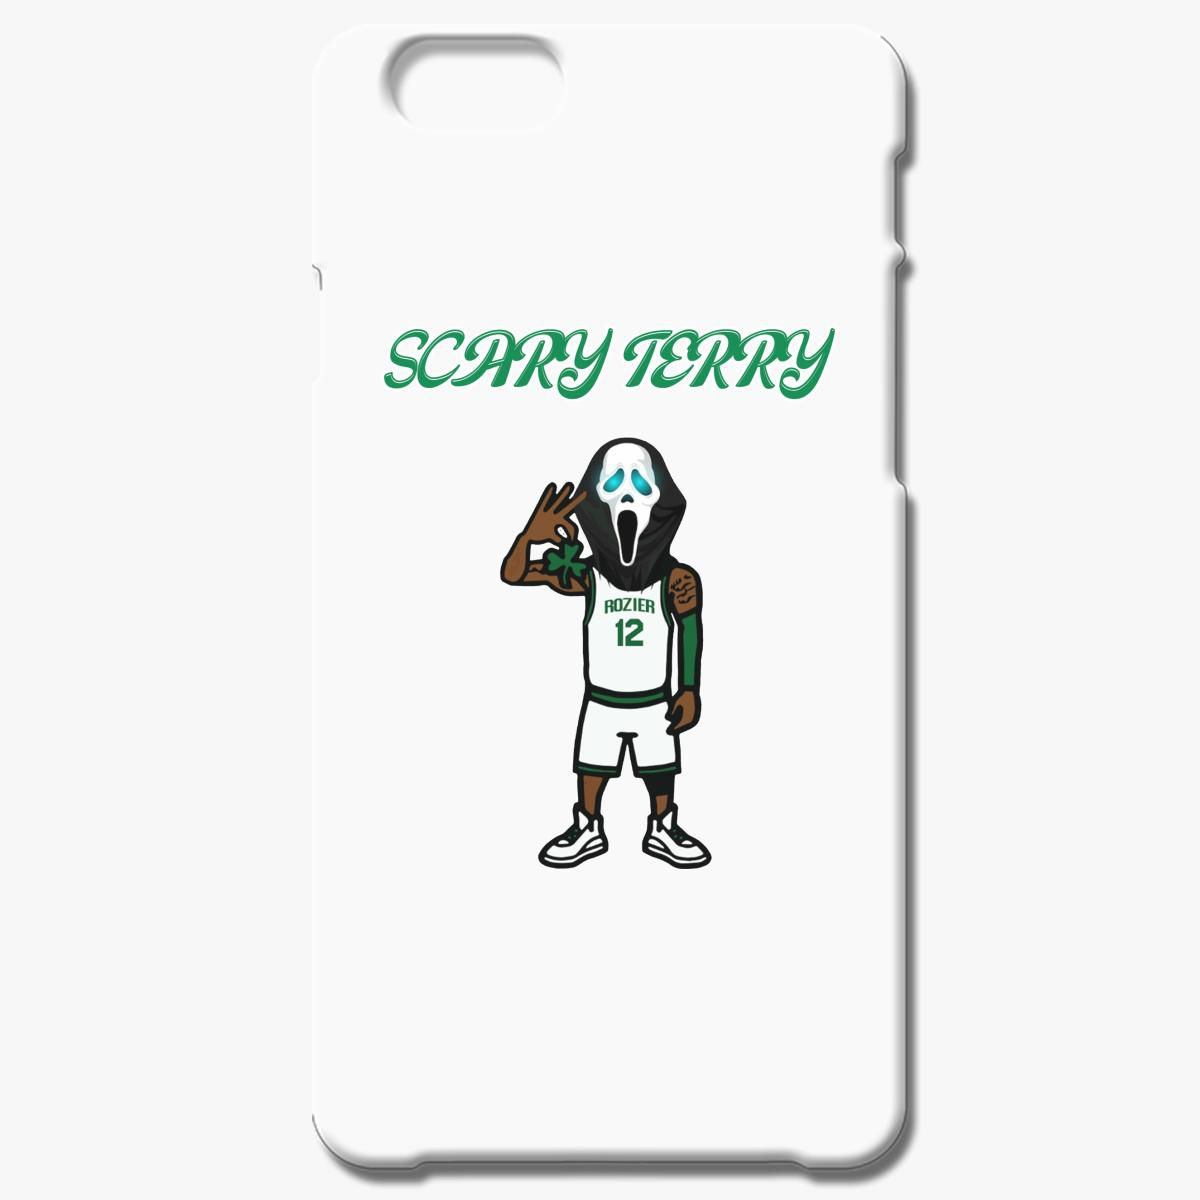 Scary Terry Rozier Iphone 6 6s Case